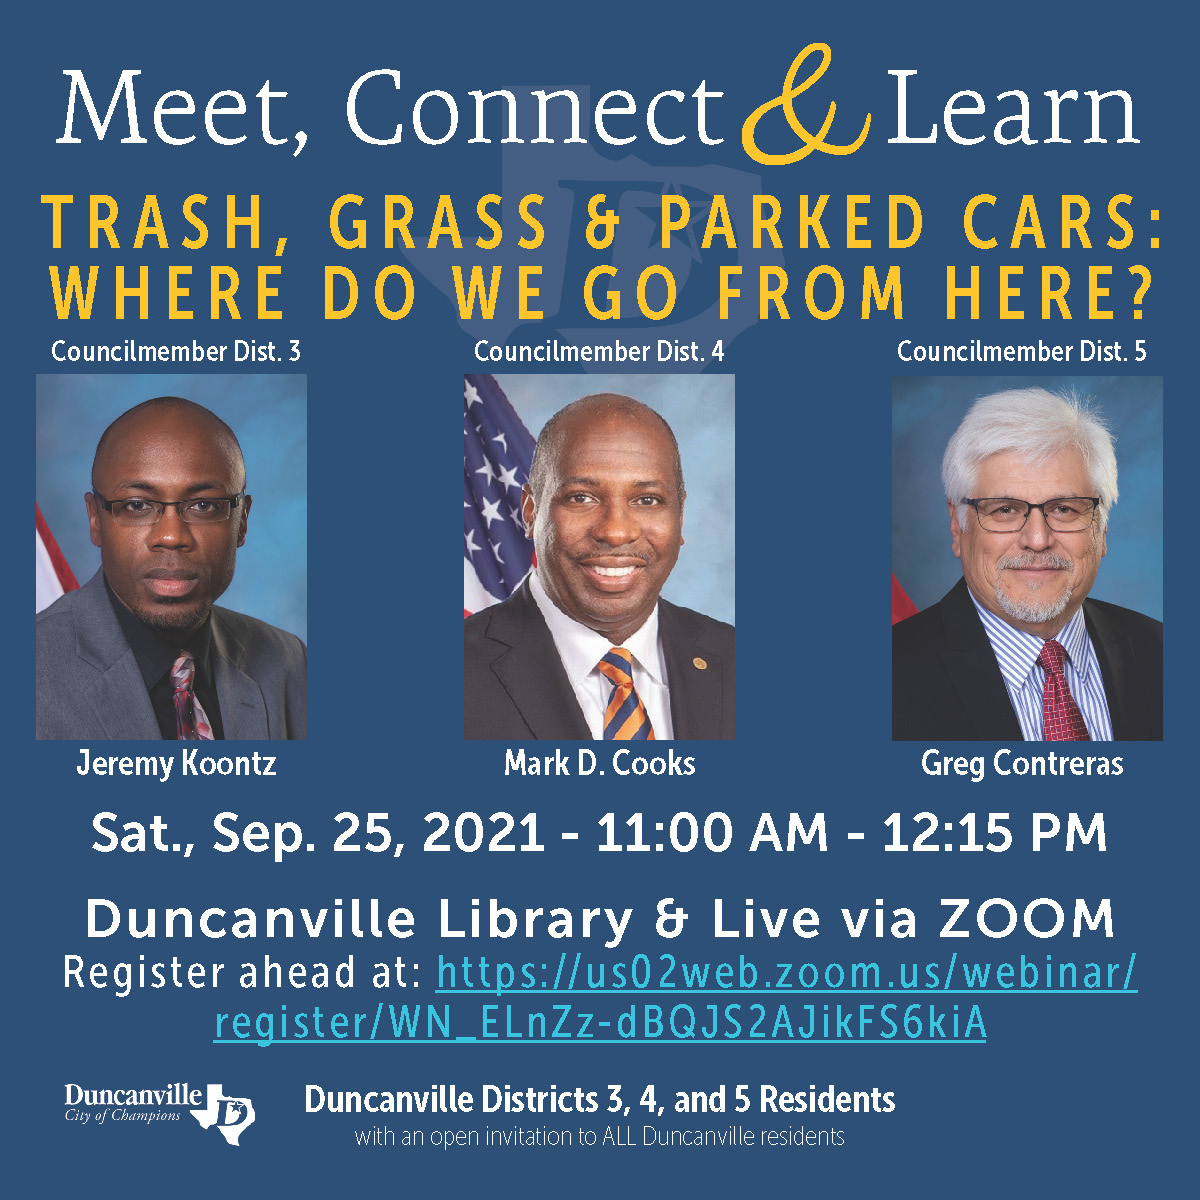 Meet, Connect & Learn - September 25, 2021